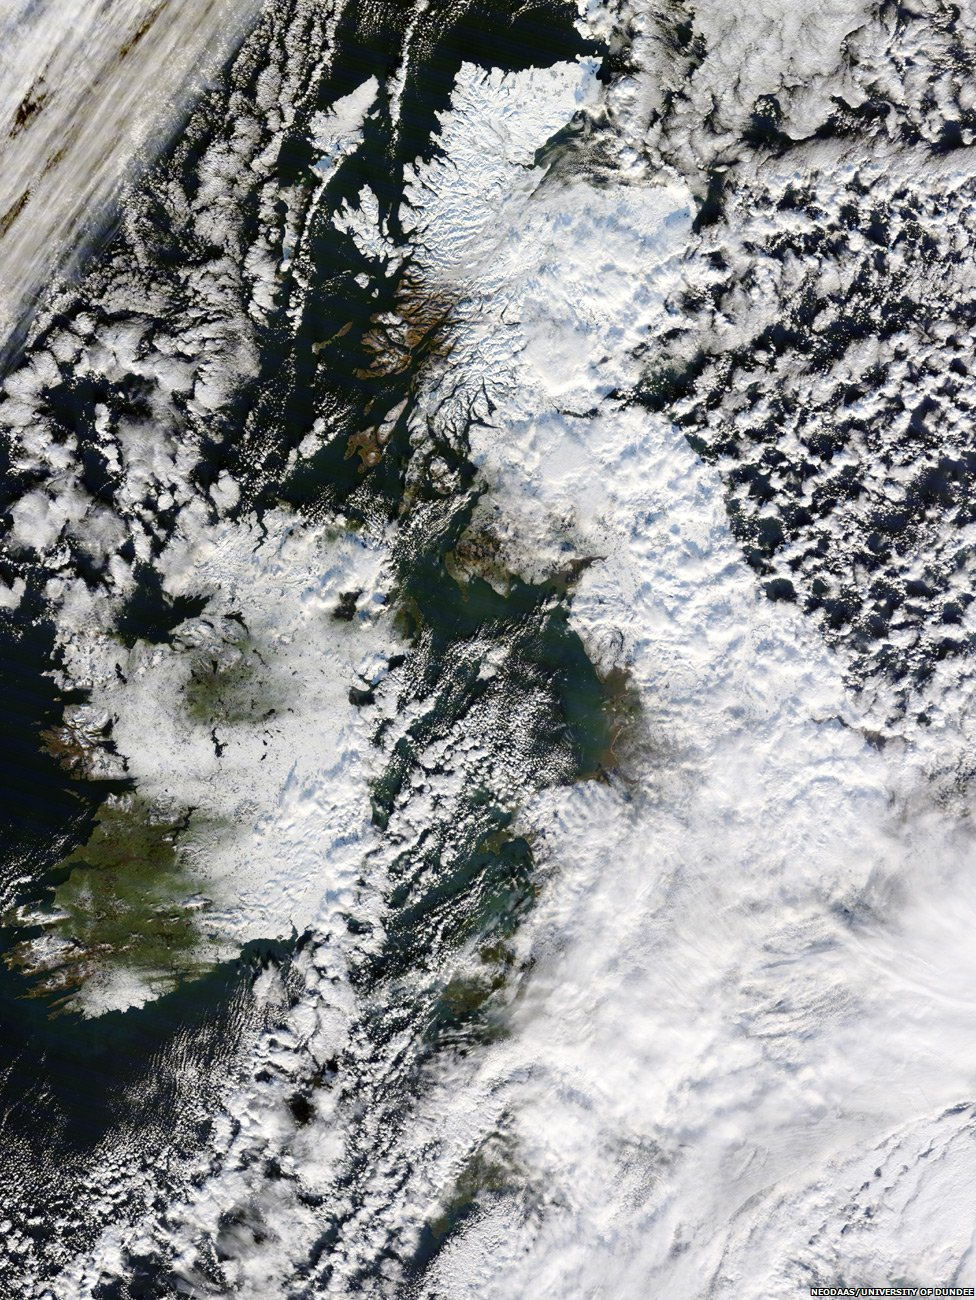 The UK covered in snow (image courtesy of NEODAAS/University of Dundee)